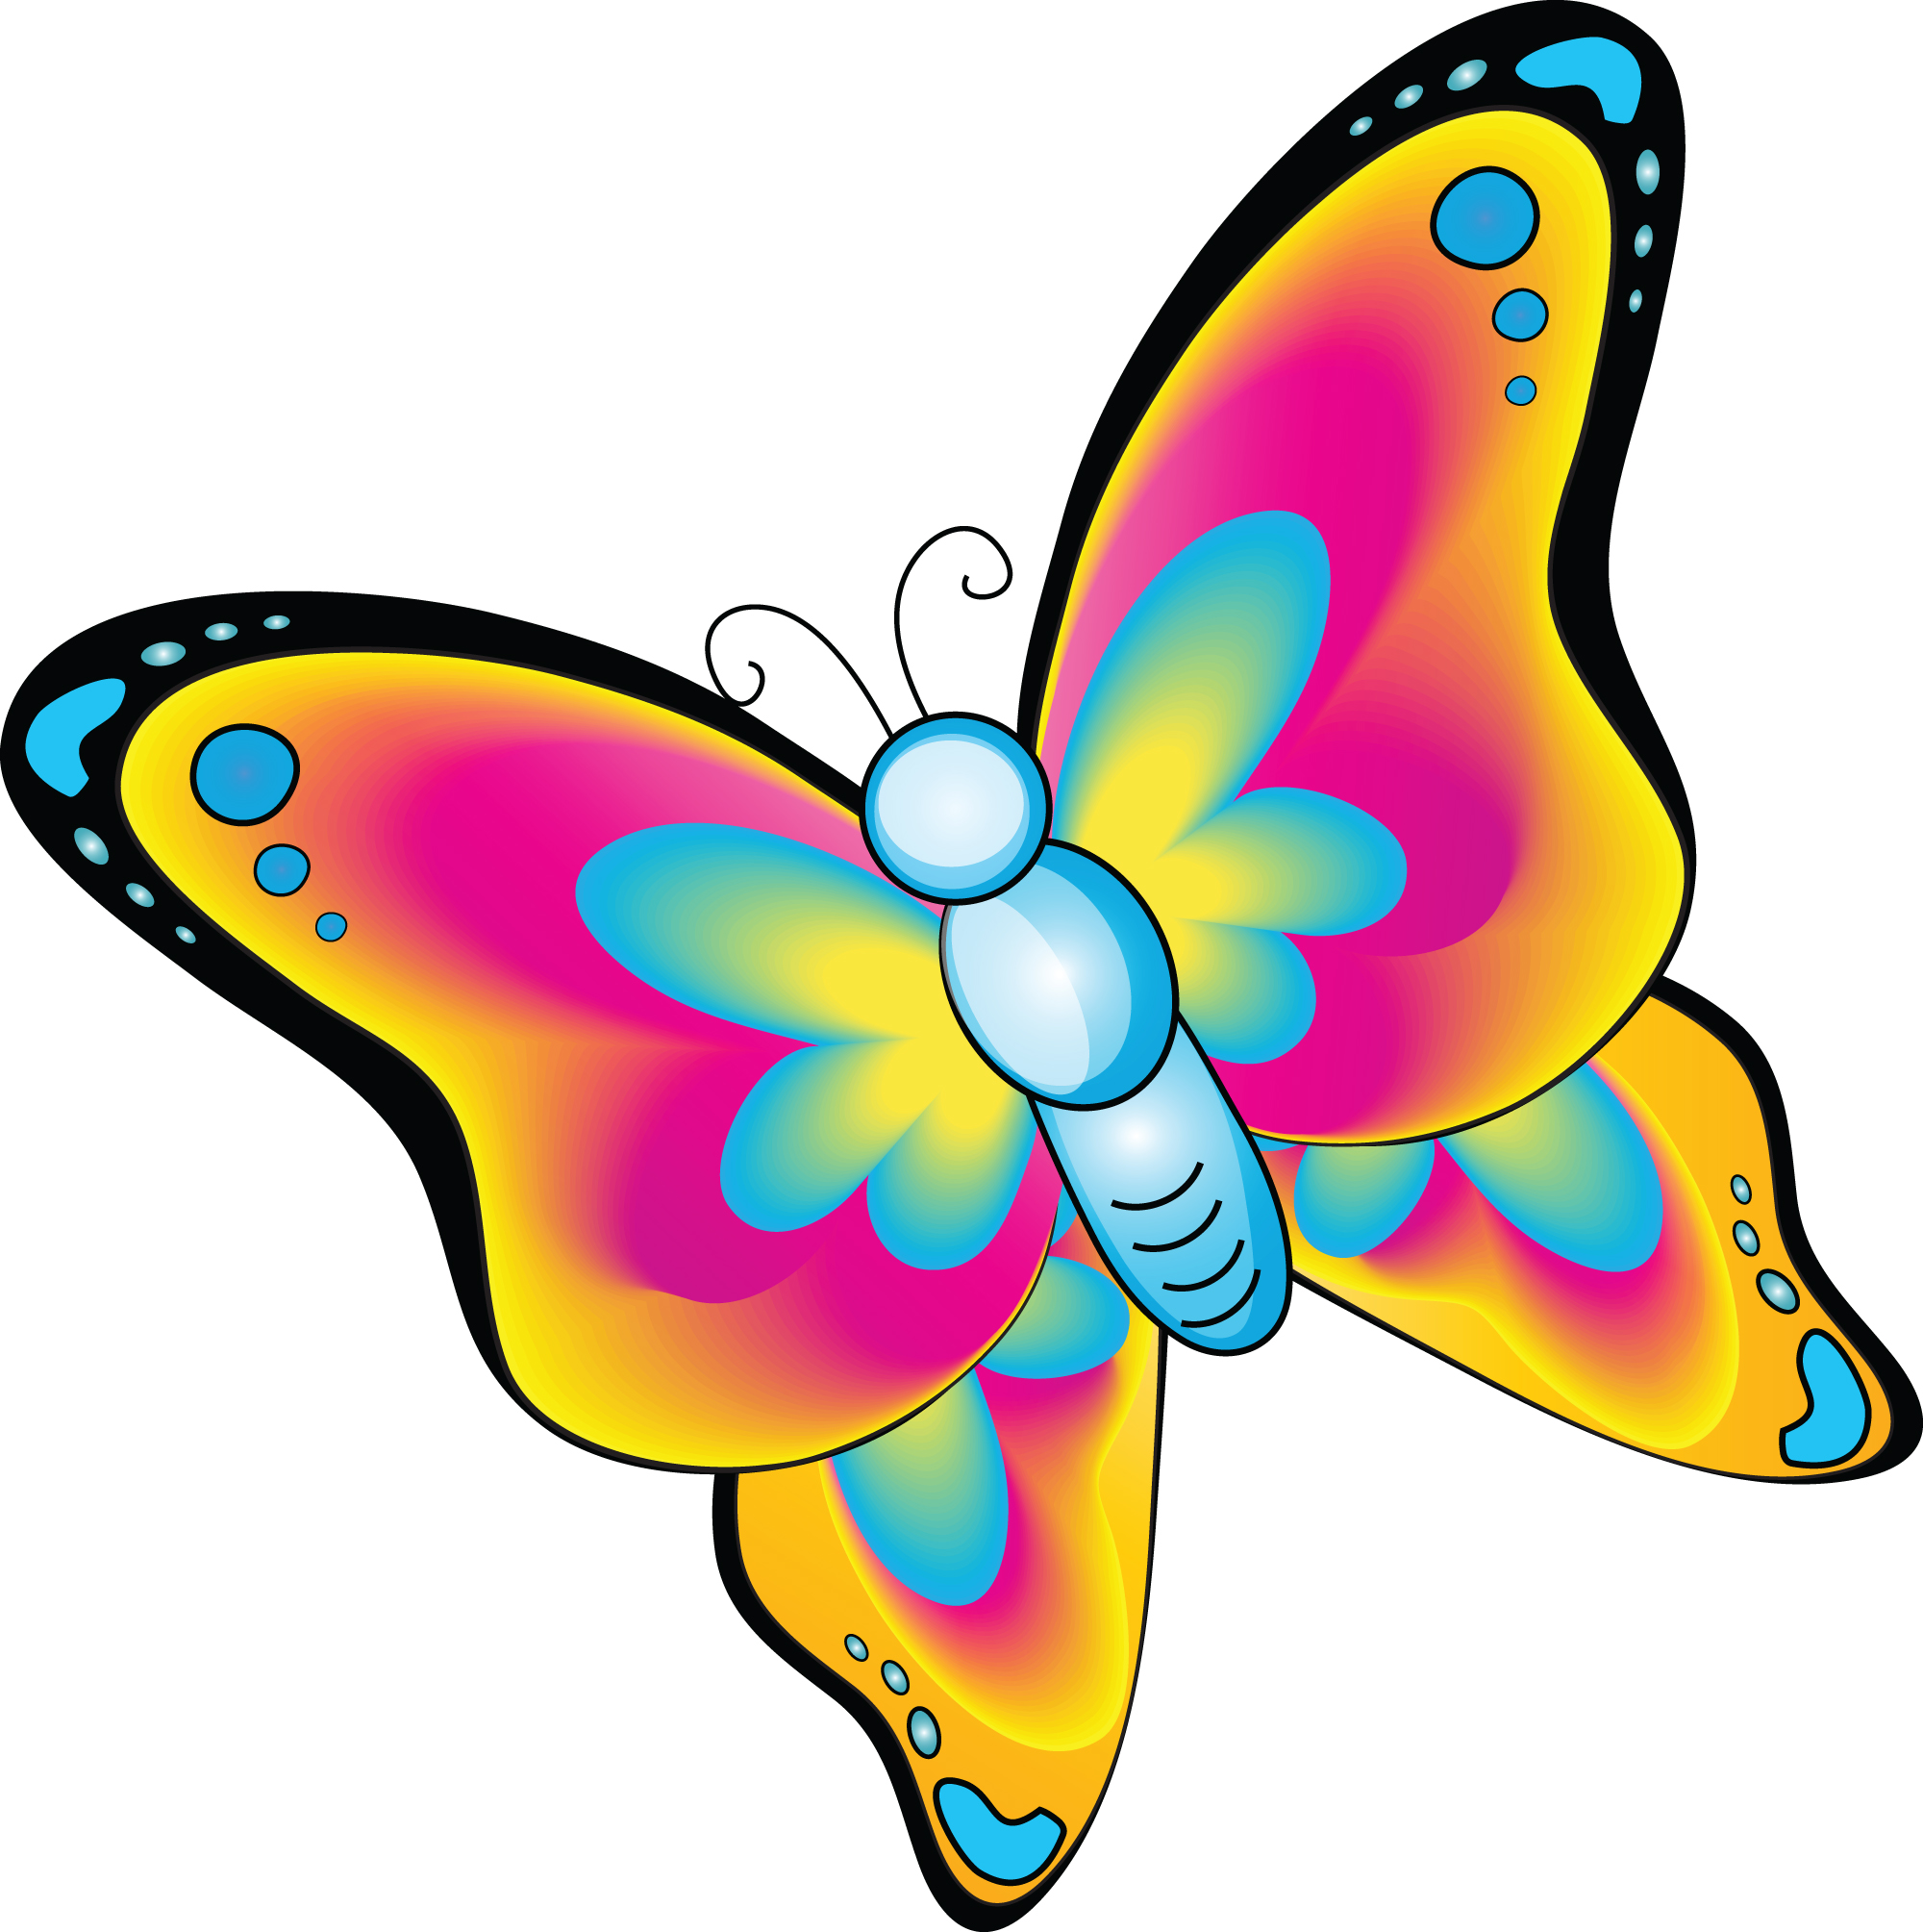 Free animated butterfly clipart clip Animated Butterfly Clipart - ClipArt Best clip